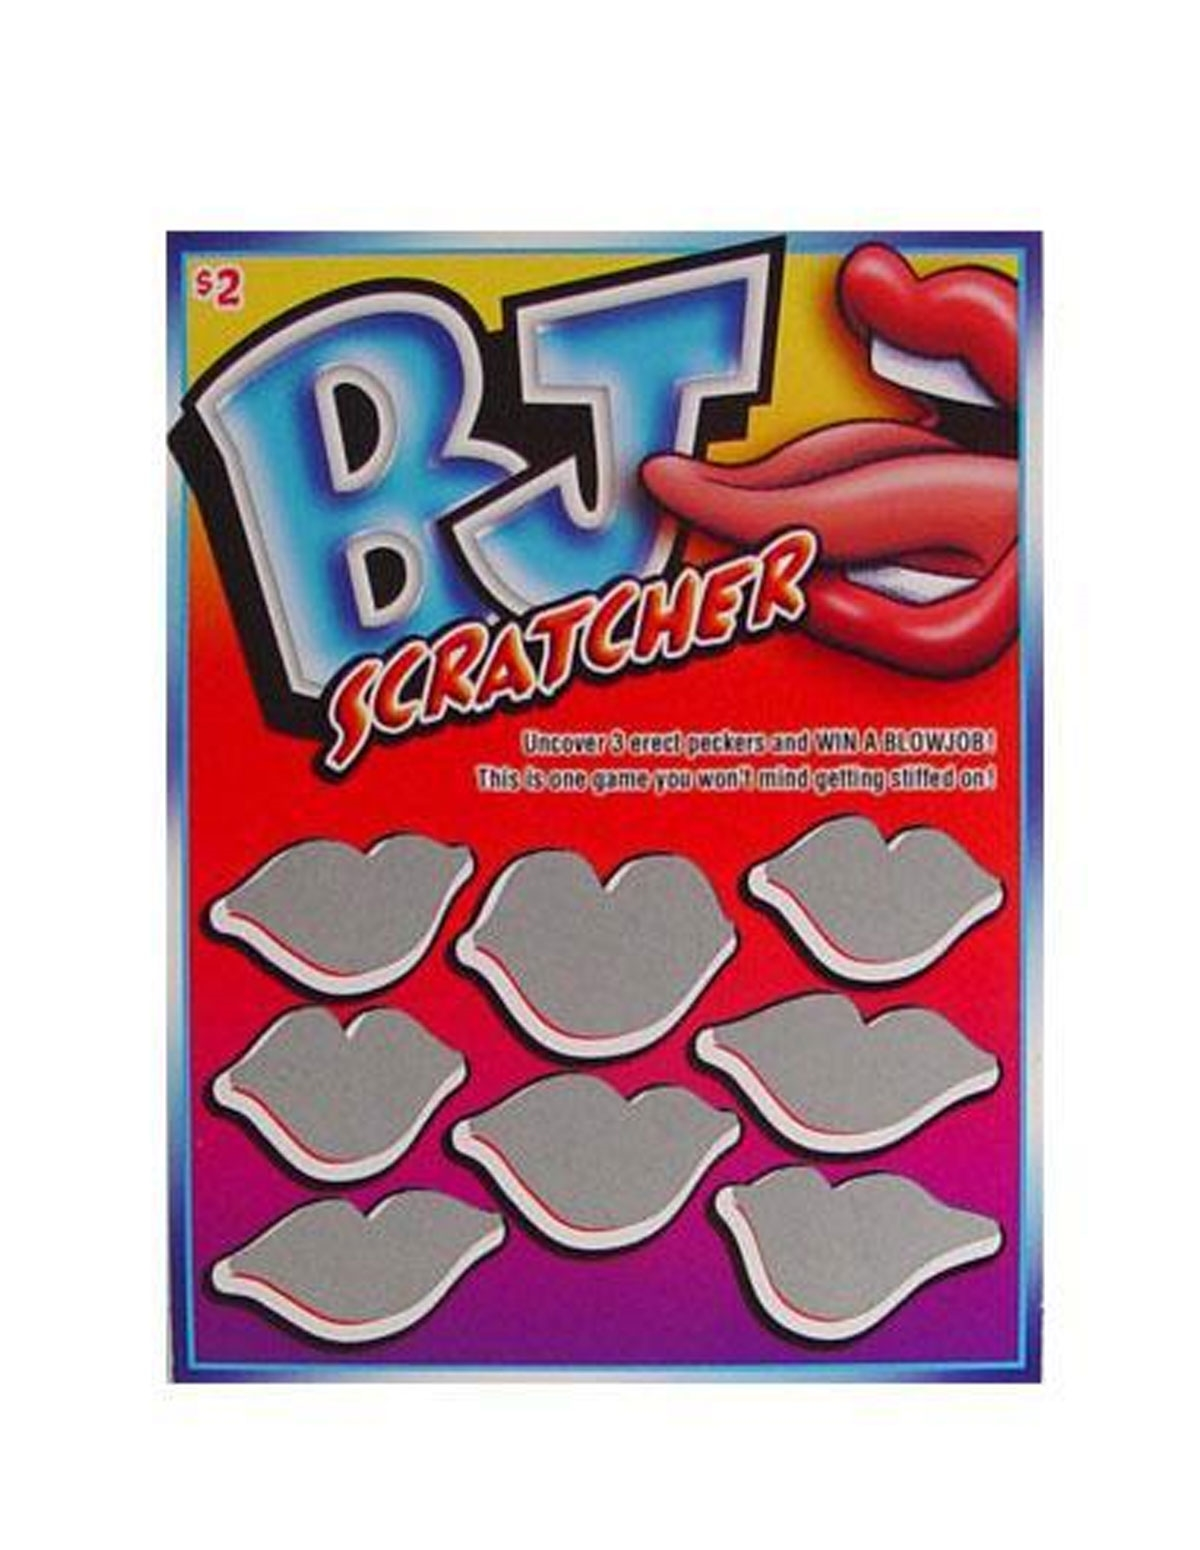 Bj Scratchers Game